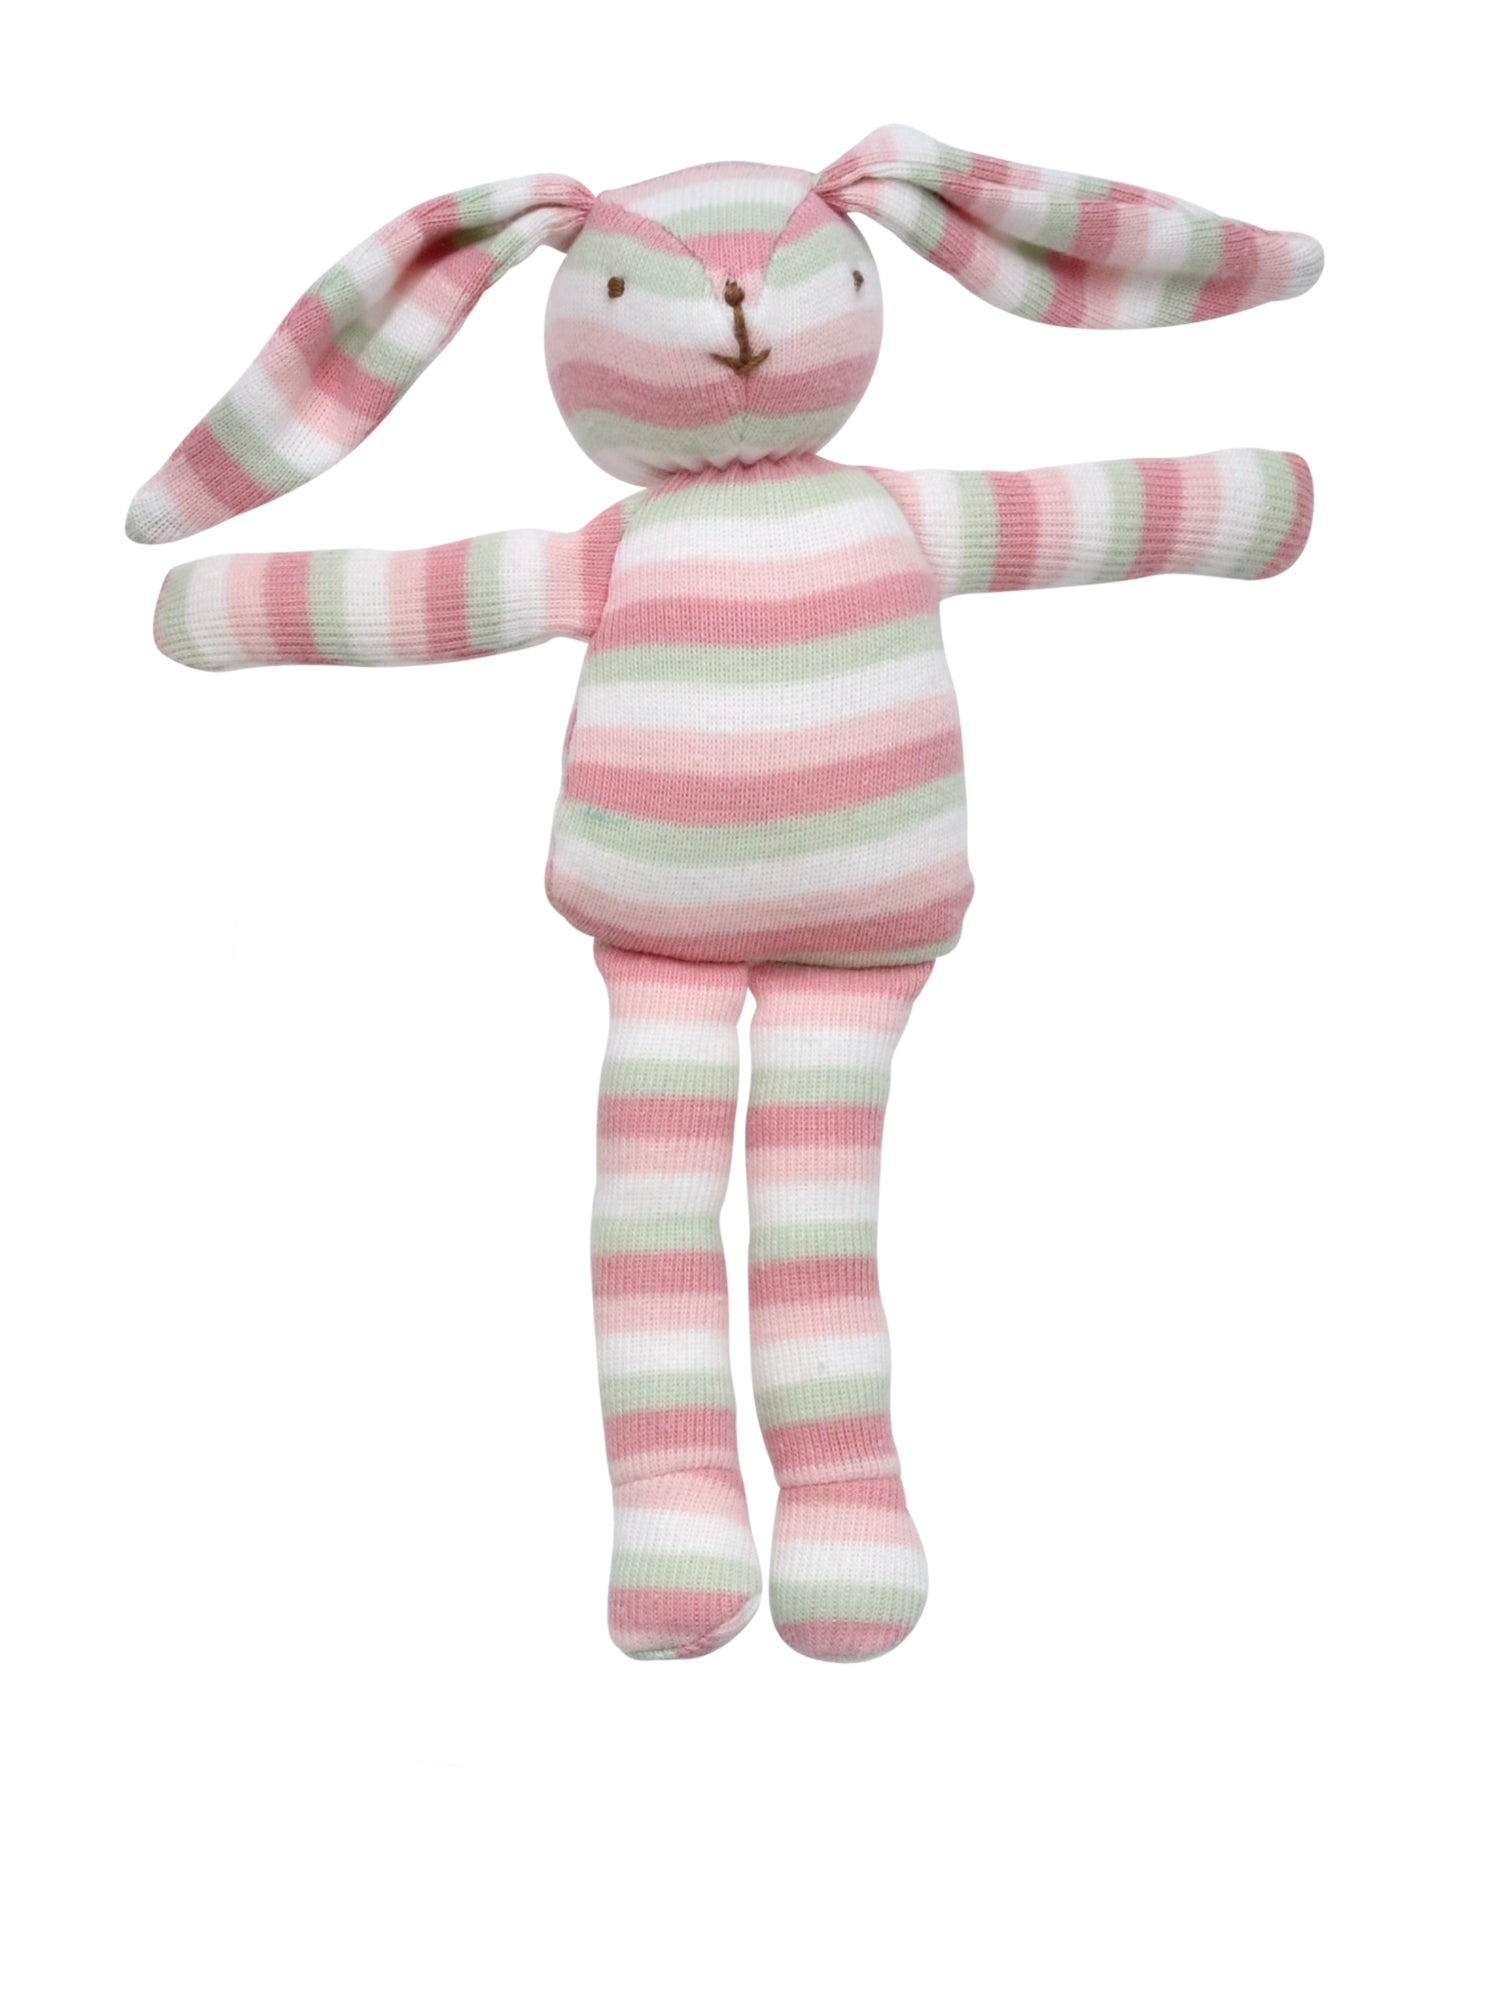 Scrappy Bunny - Assorted Colors